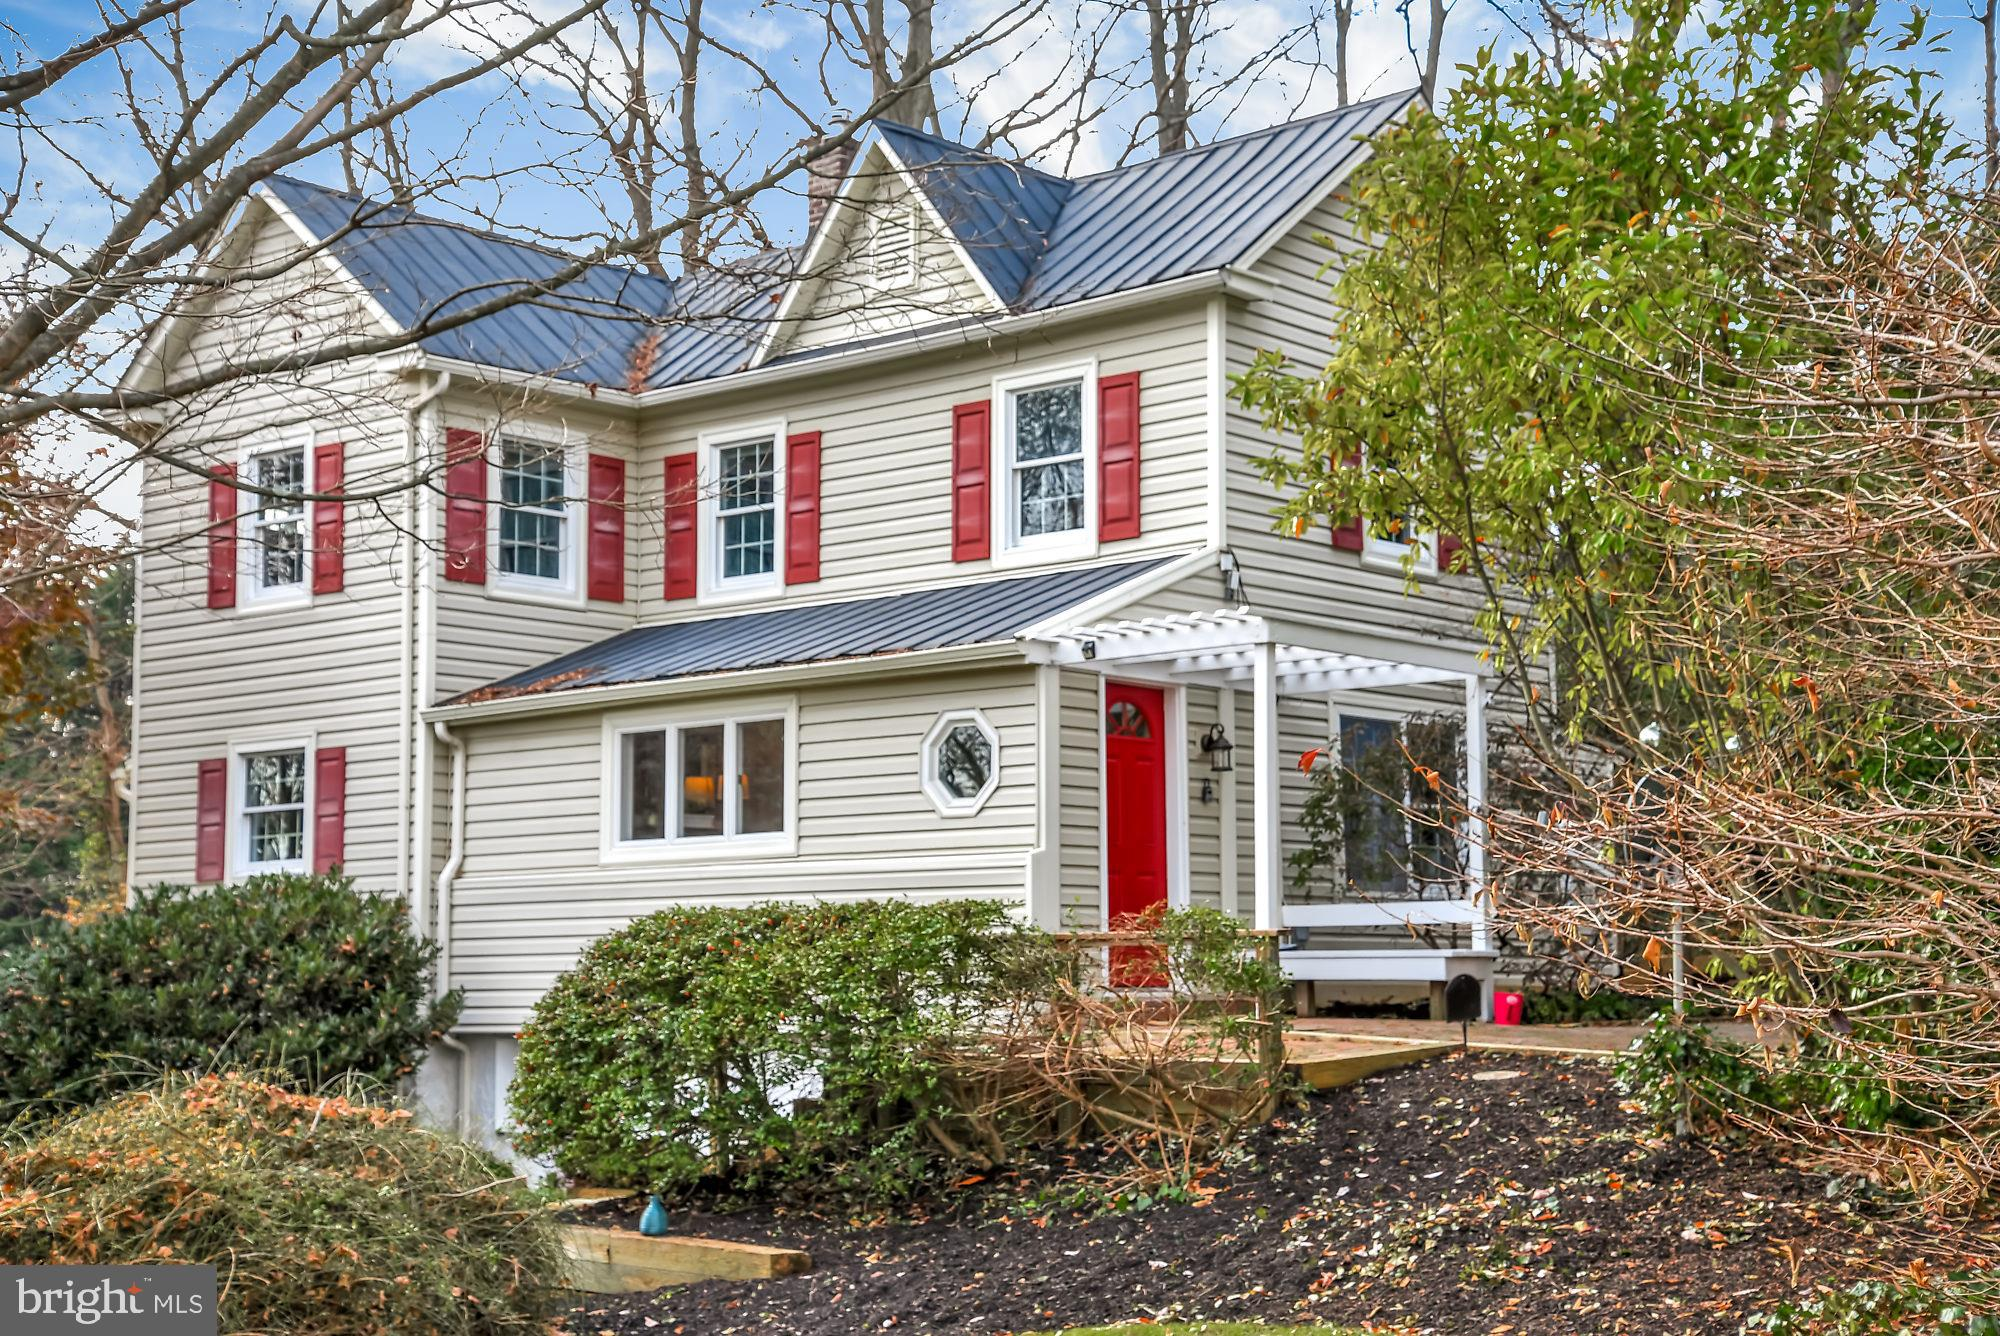 STUNNING ICONIC COLONIAL FARMHOUSE in Woodbine perched on 1.73 acres with so much charm and characte